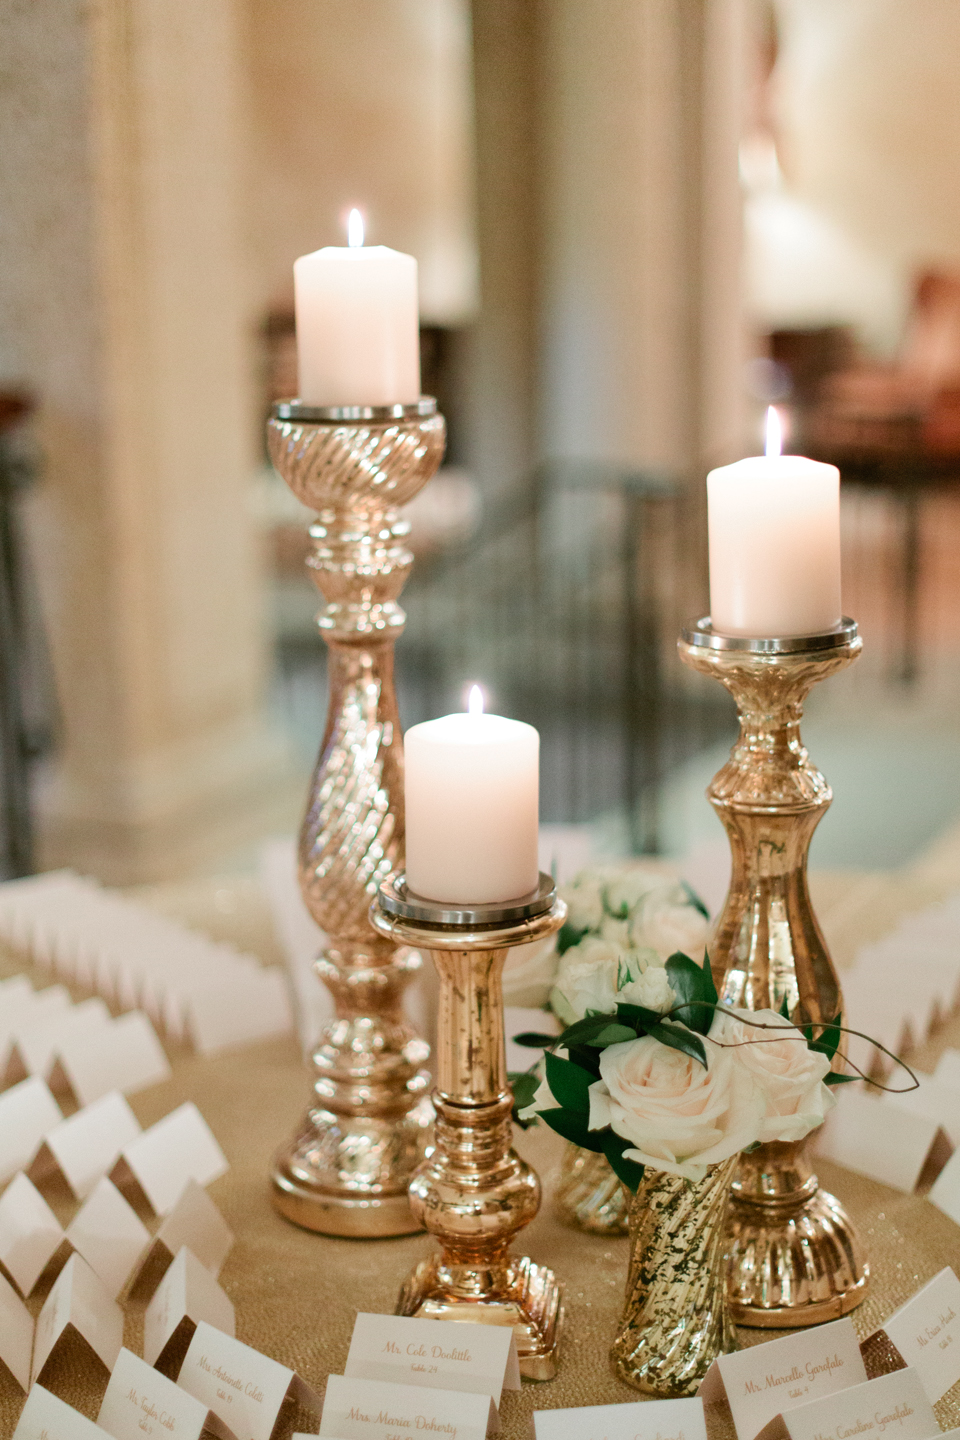 Image of candles on the escort card table at a wedding at TPC Sawgrass in Ponte Vedra, Florida